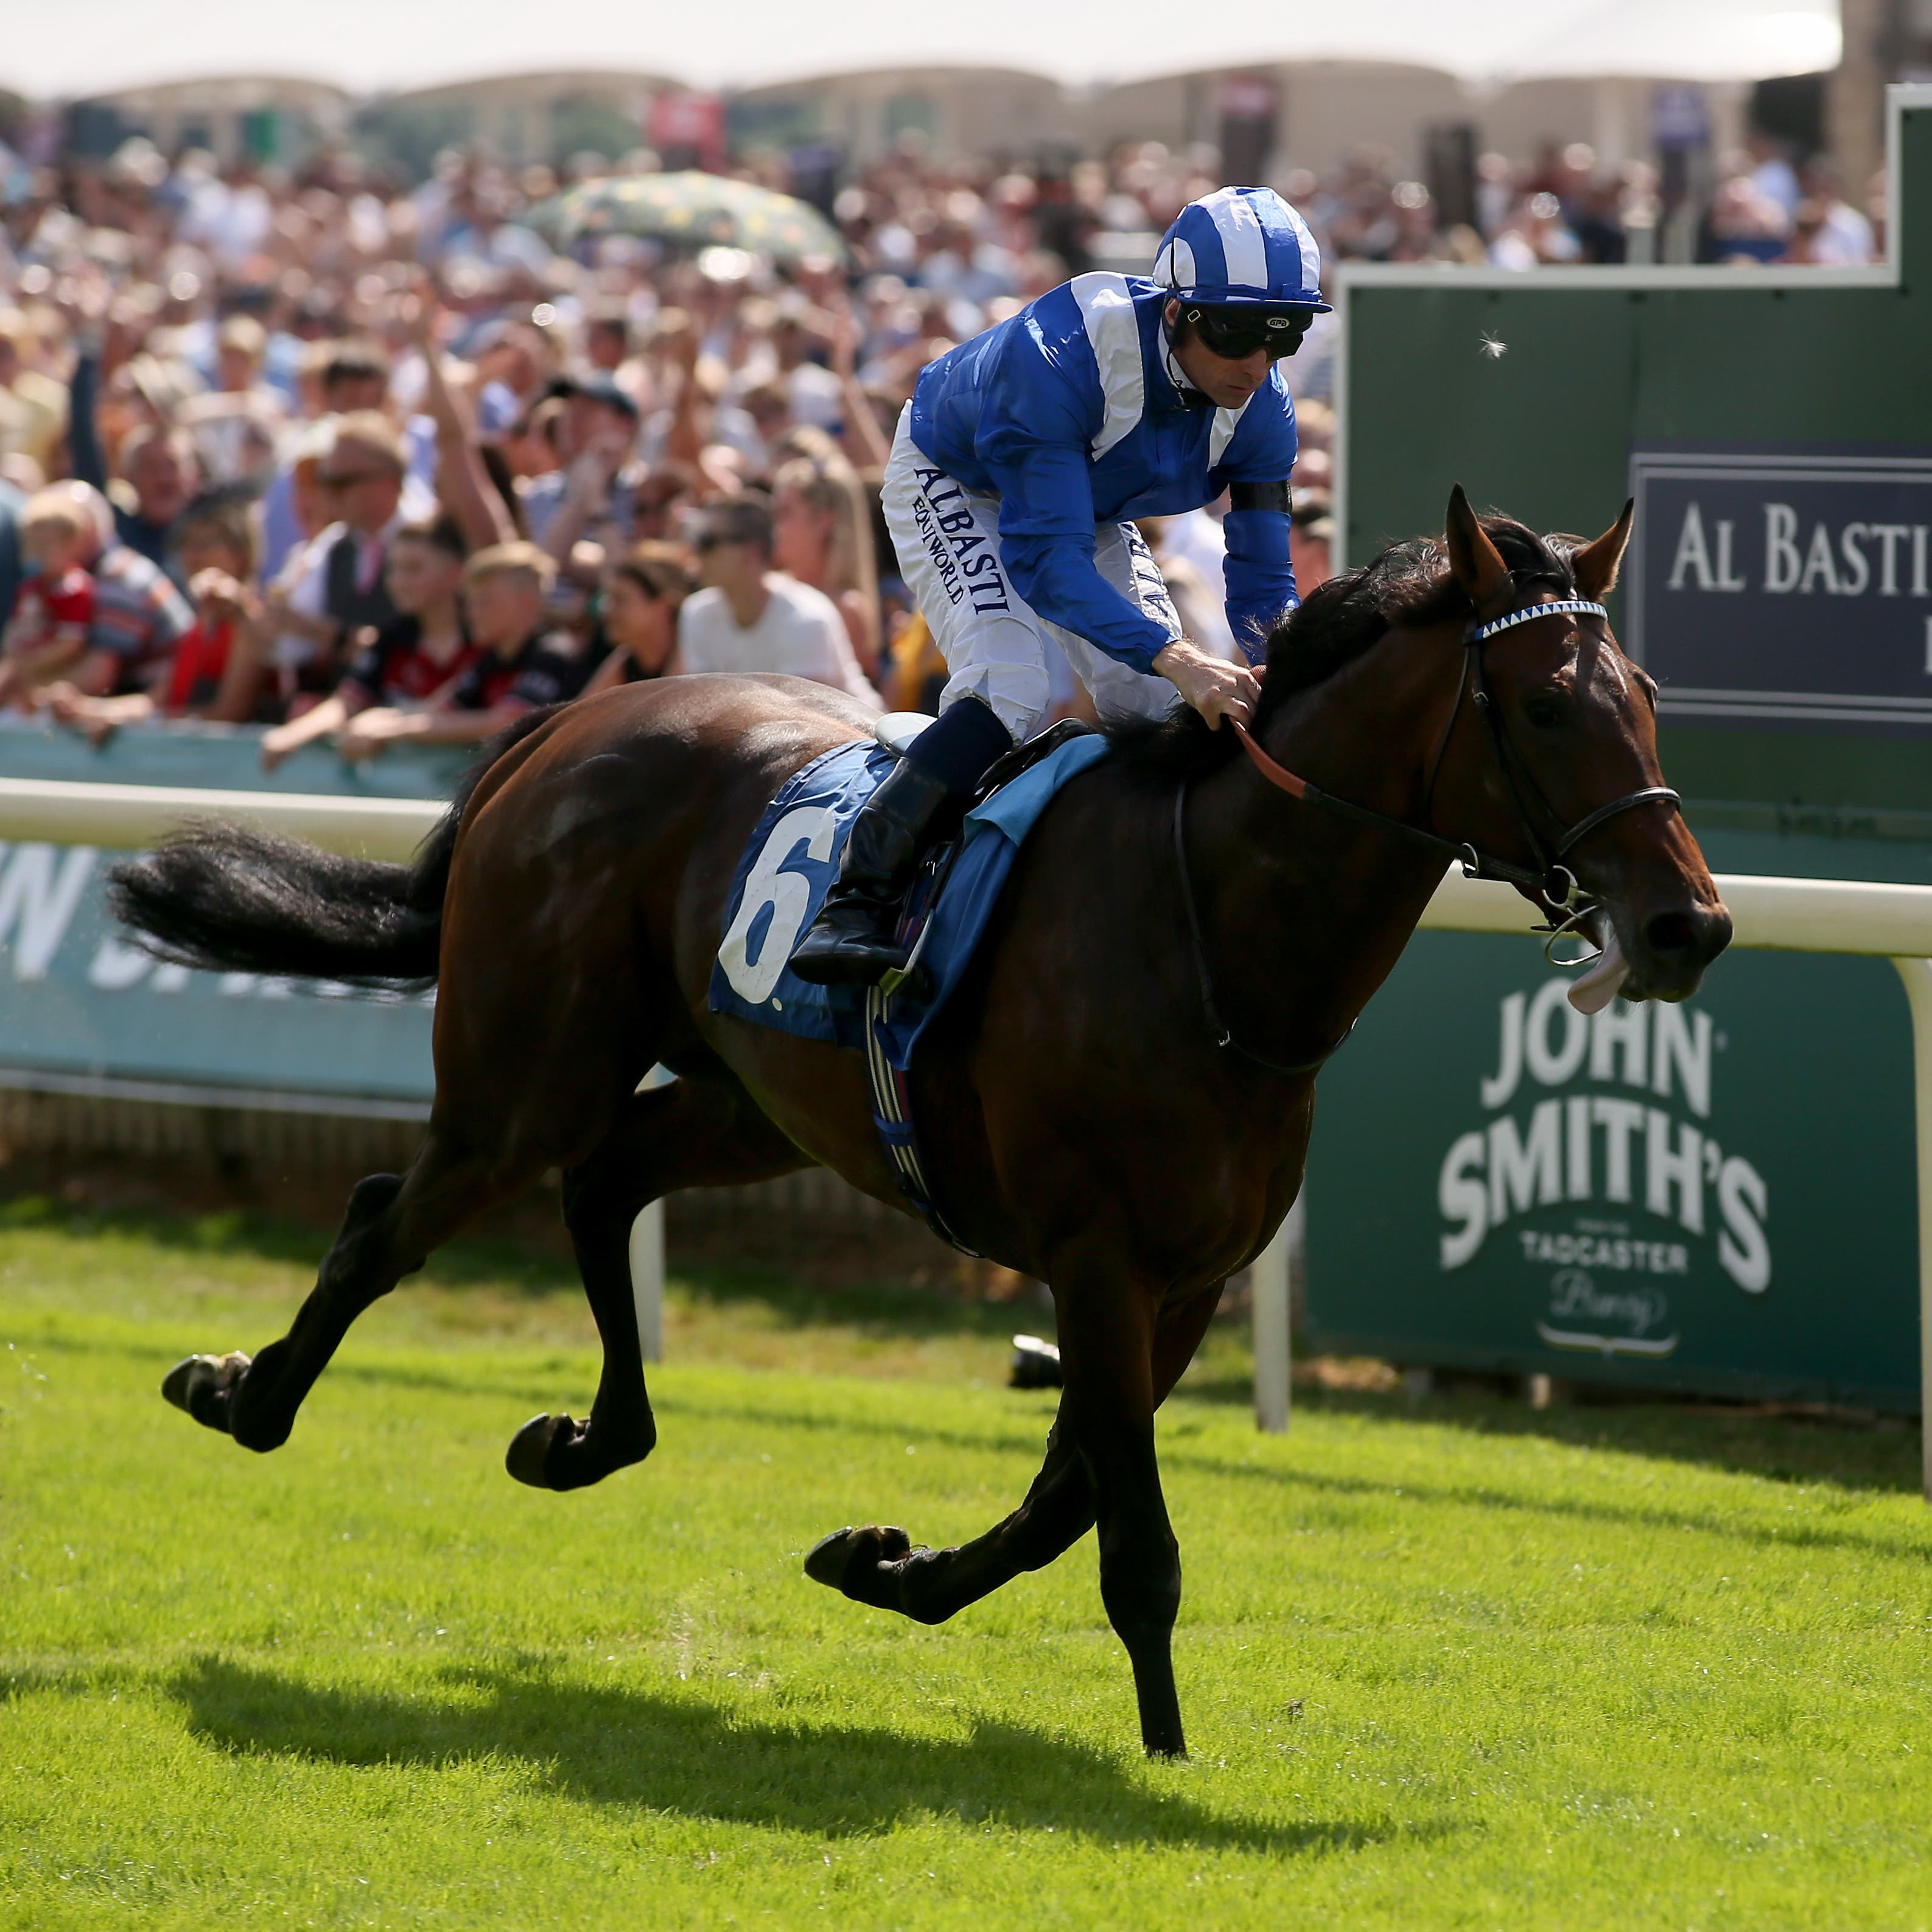 Wadilsafa will bid for Listed glory in the Smarkets Fortune Stakes at Sandown on Wednesday